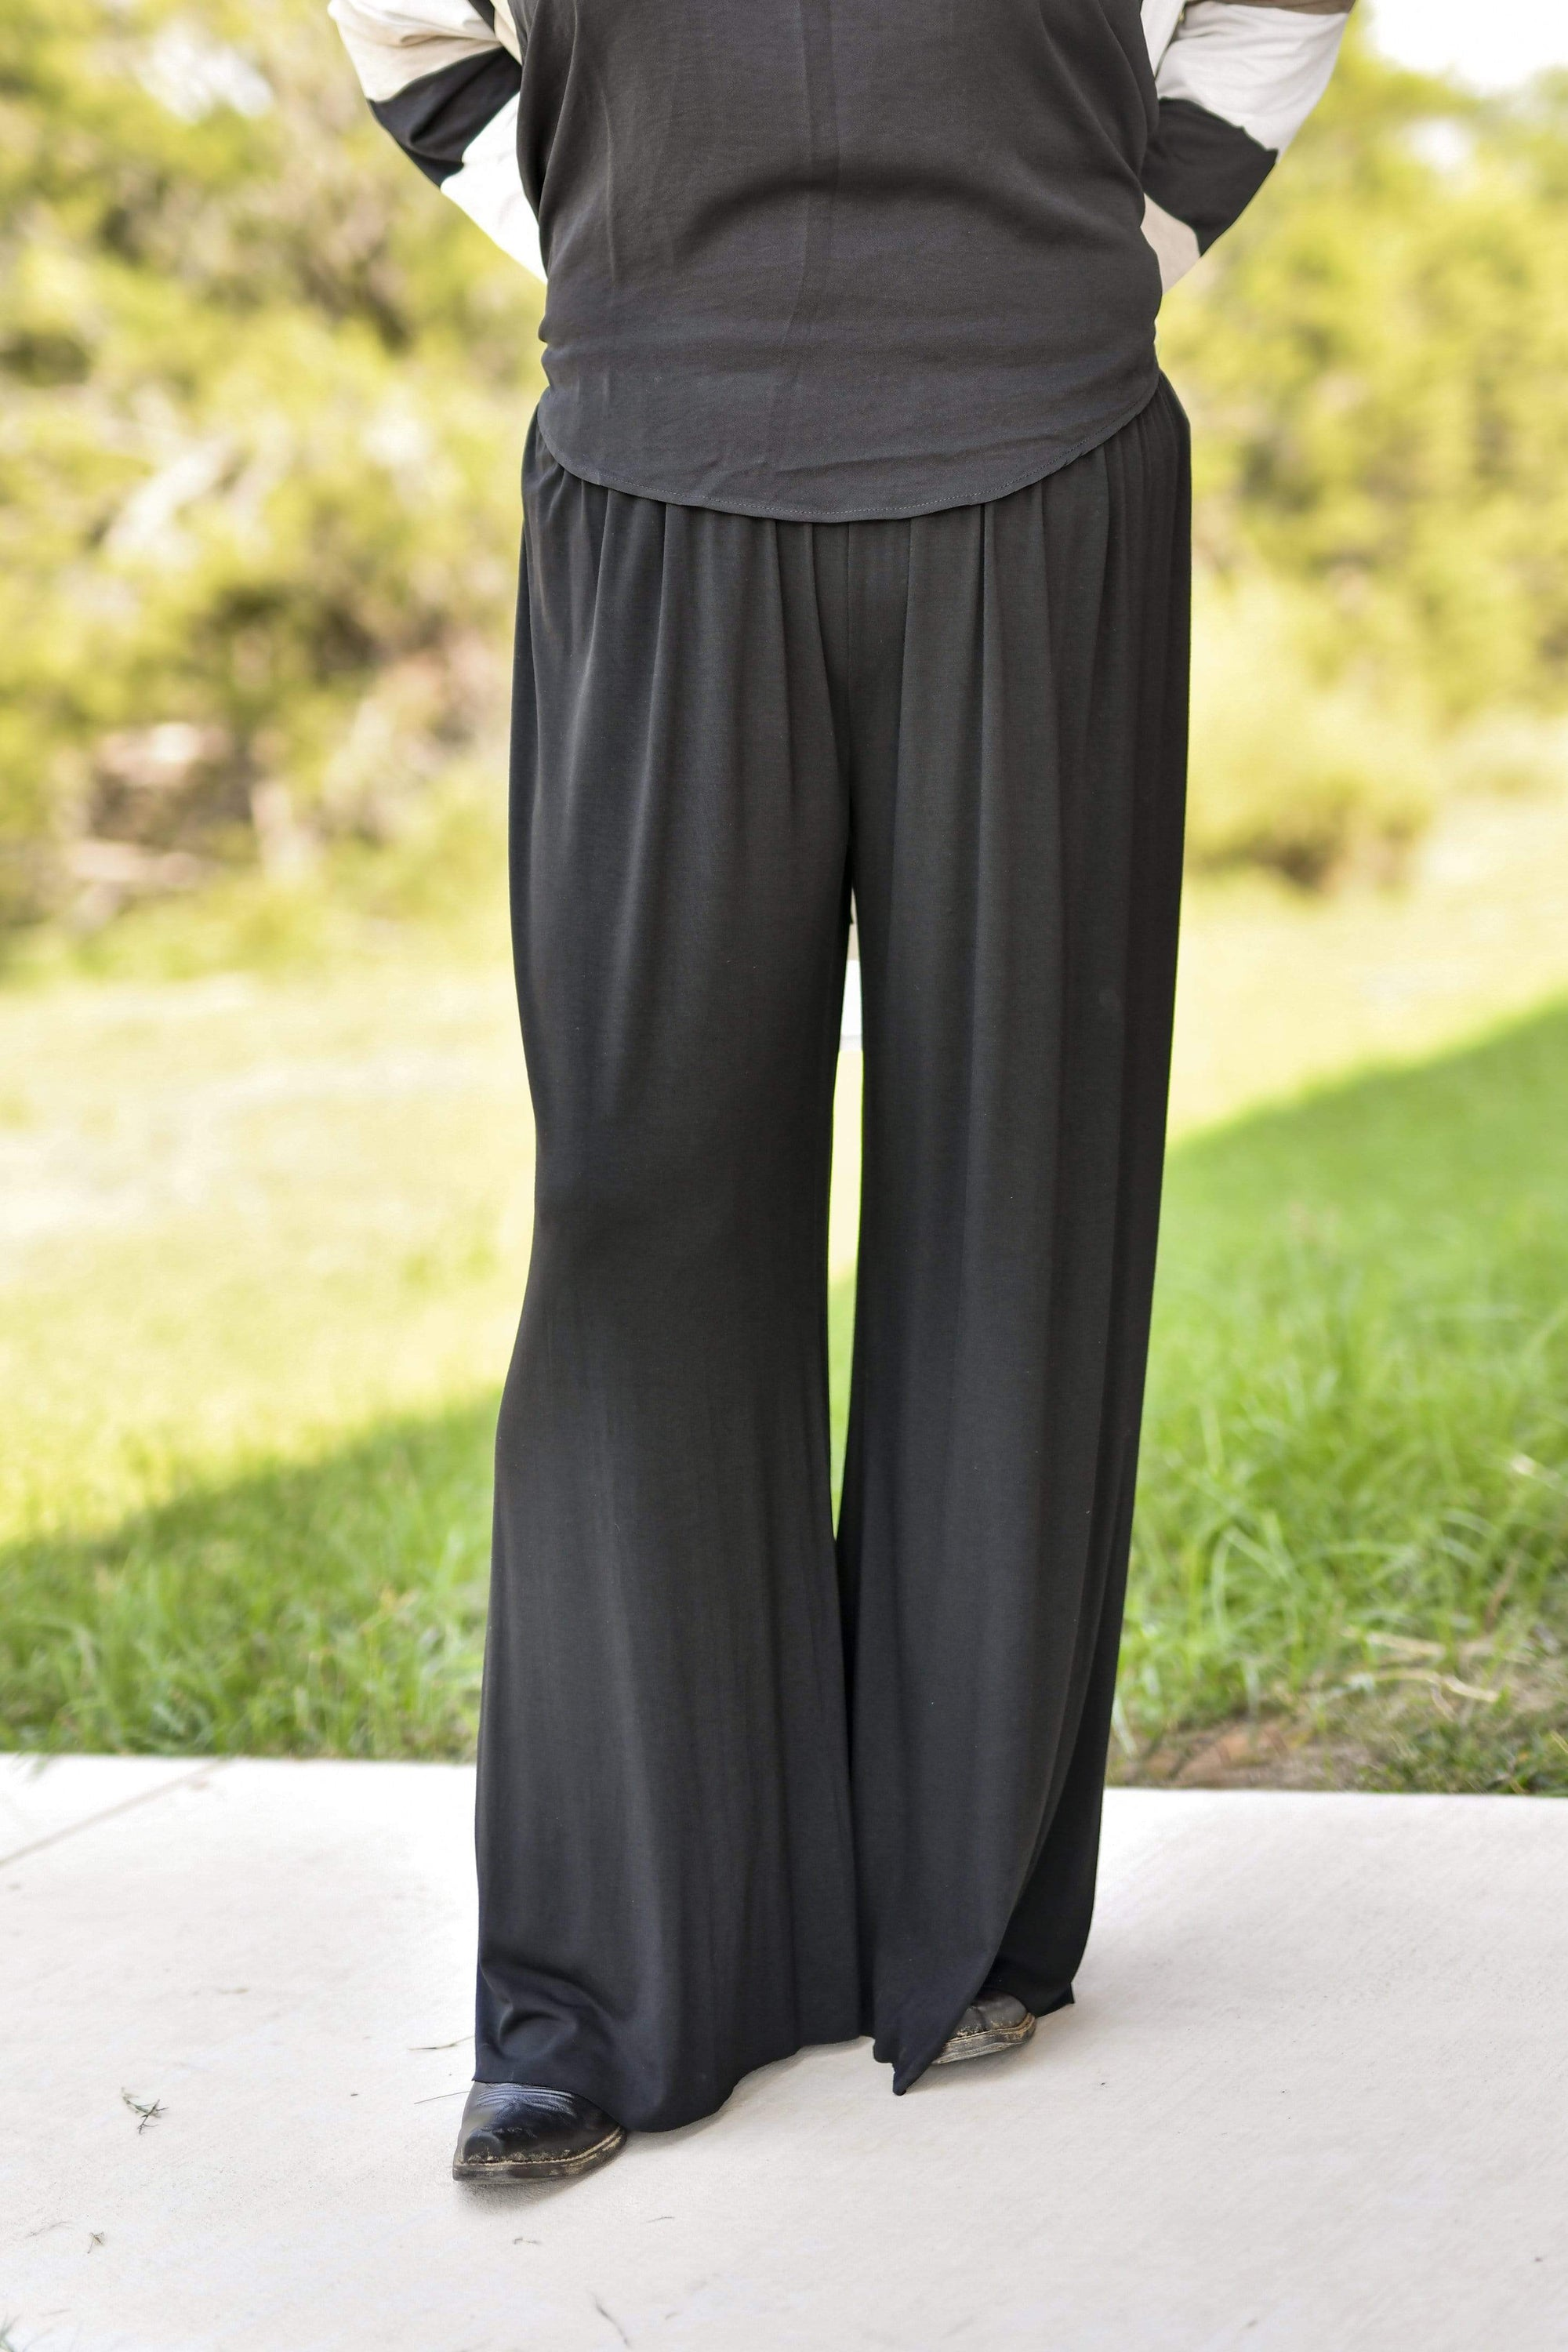 Accessorize In Style Full Length Elastic Waist Palazzo Pants - Black